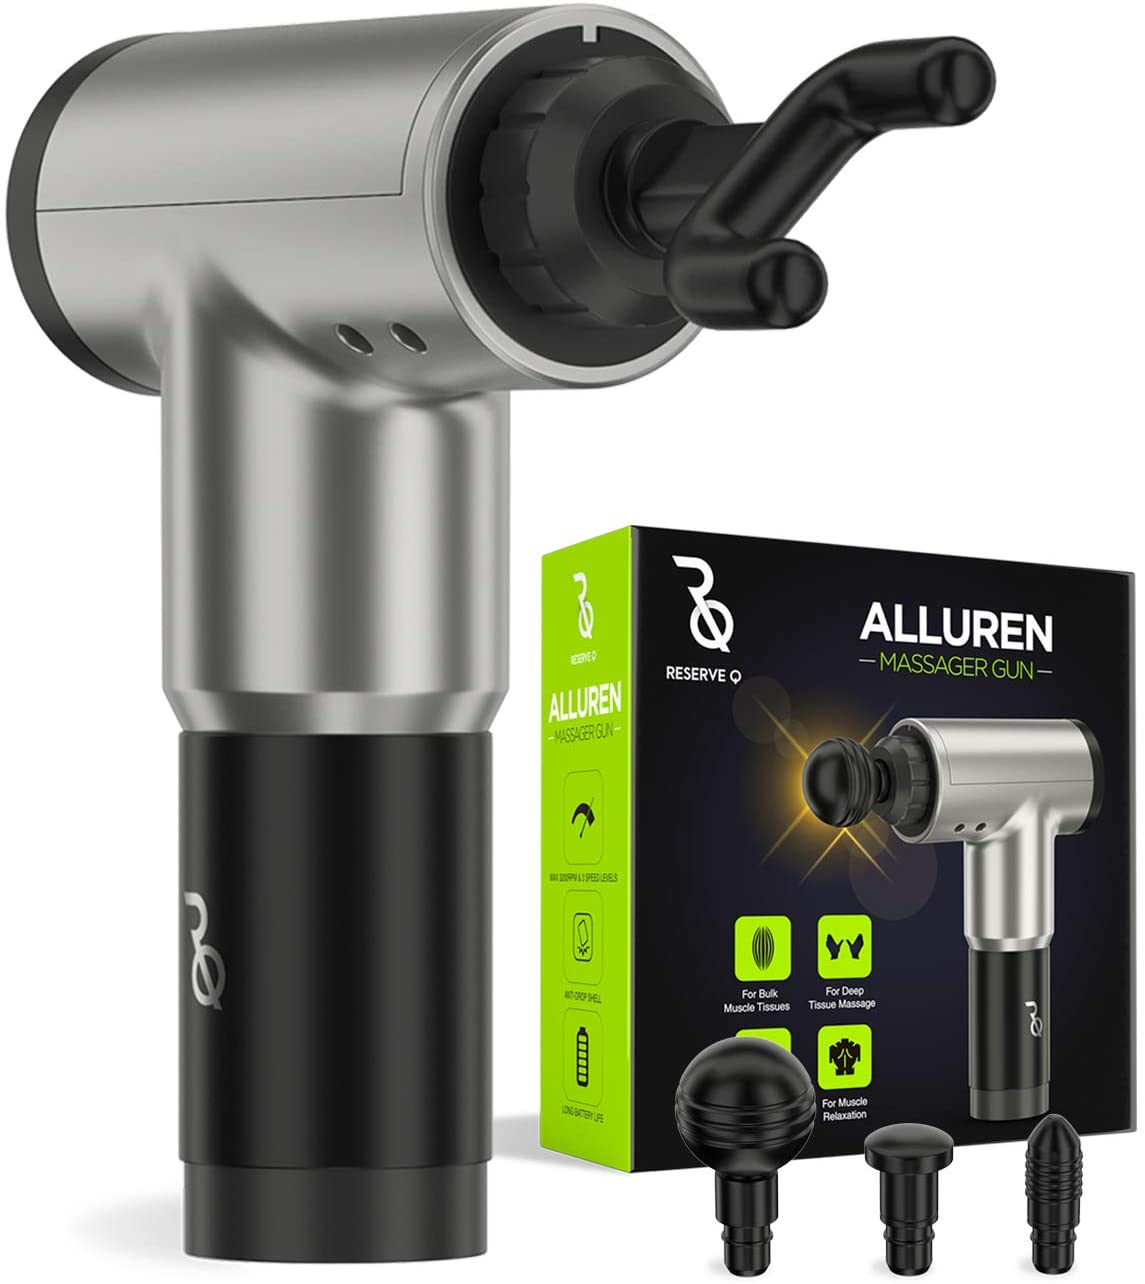 Alluren Portable and Lightweight Massager Gun